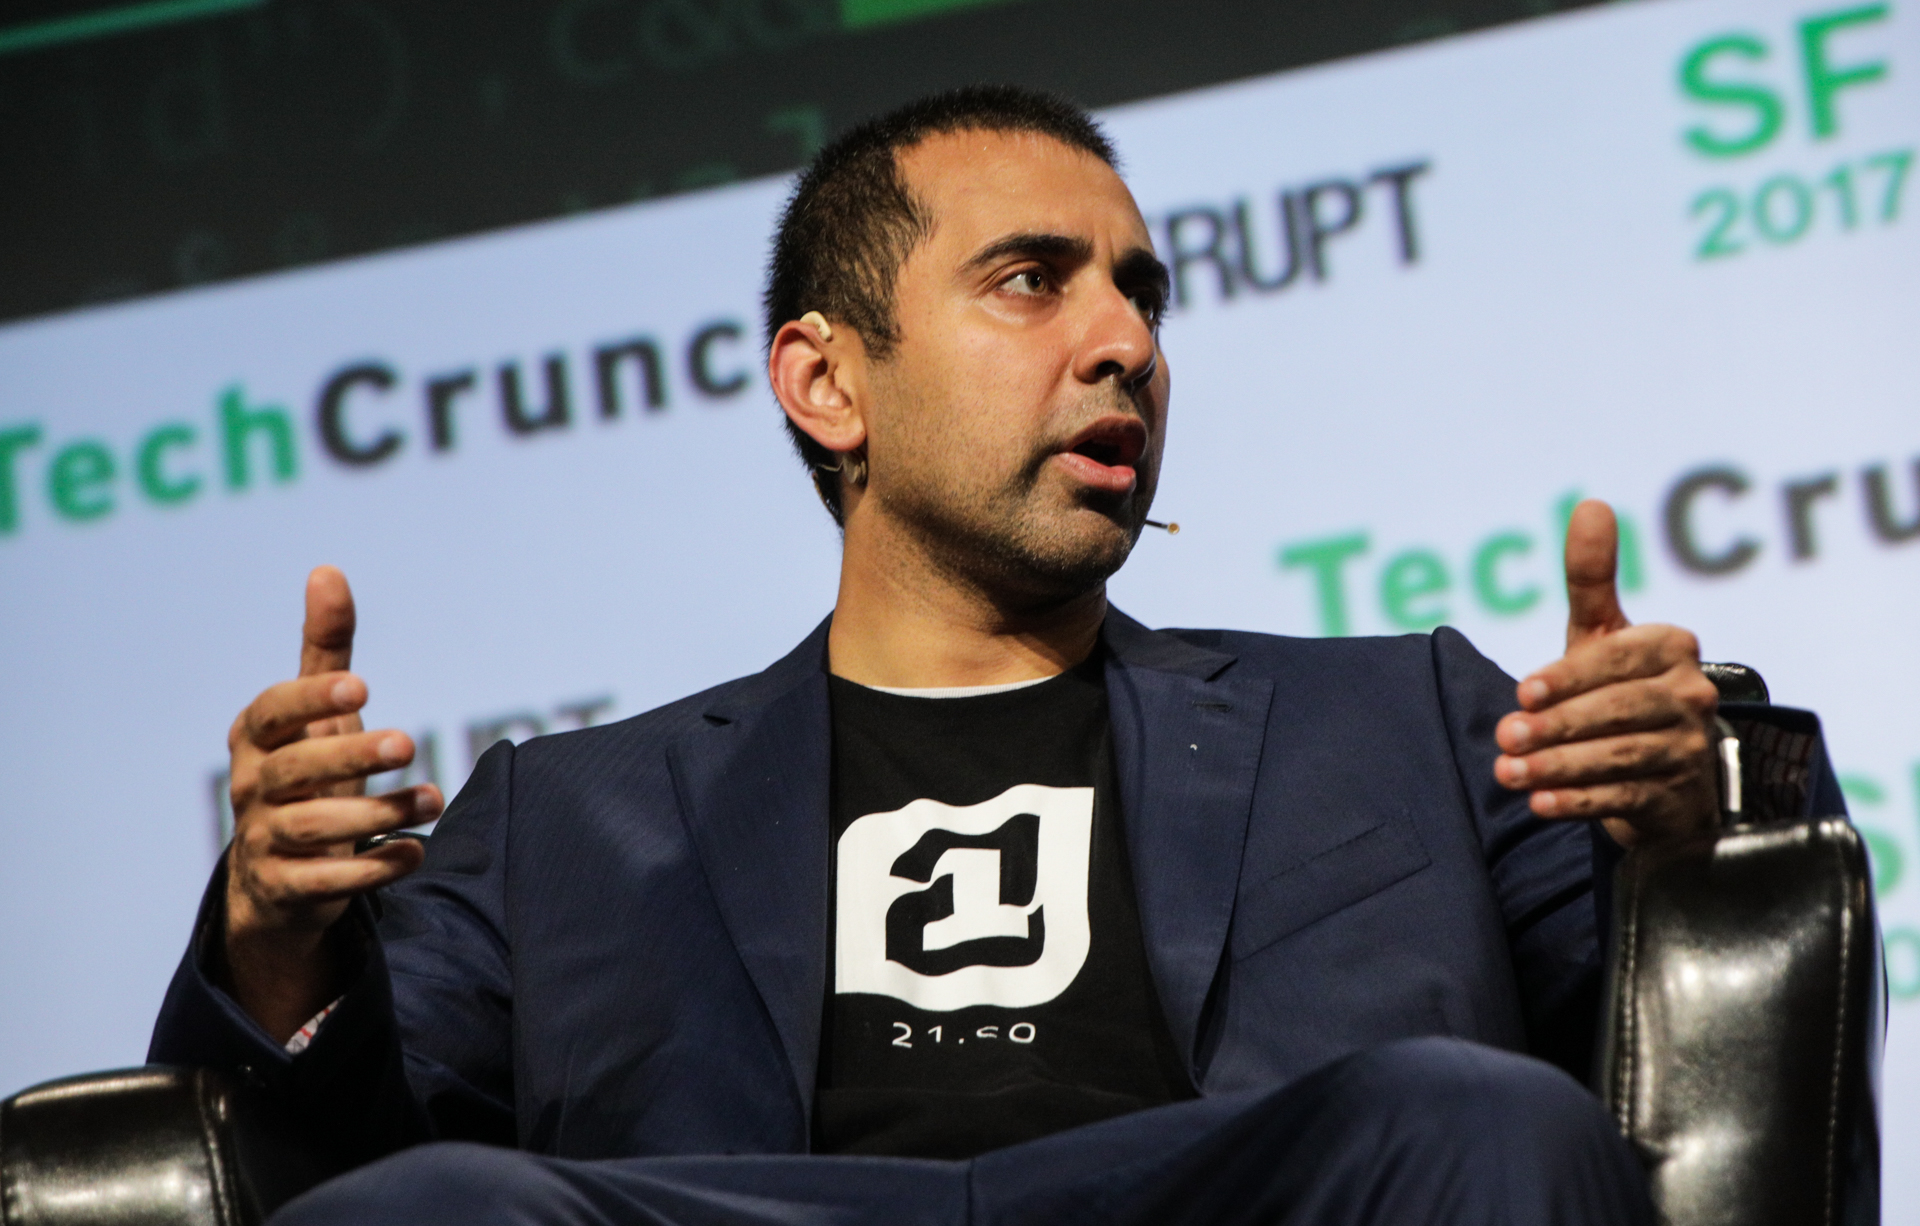 Coinbase buys Earn.com and makes CEO Balaji Srinivasan its first CTO